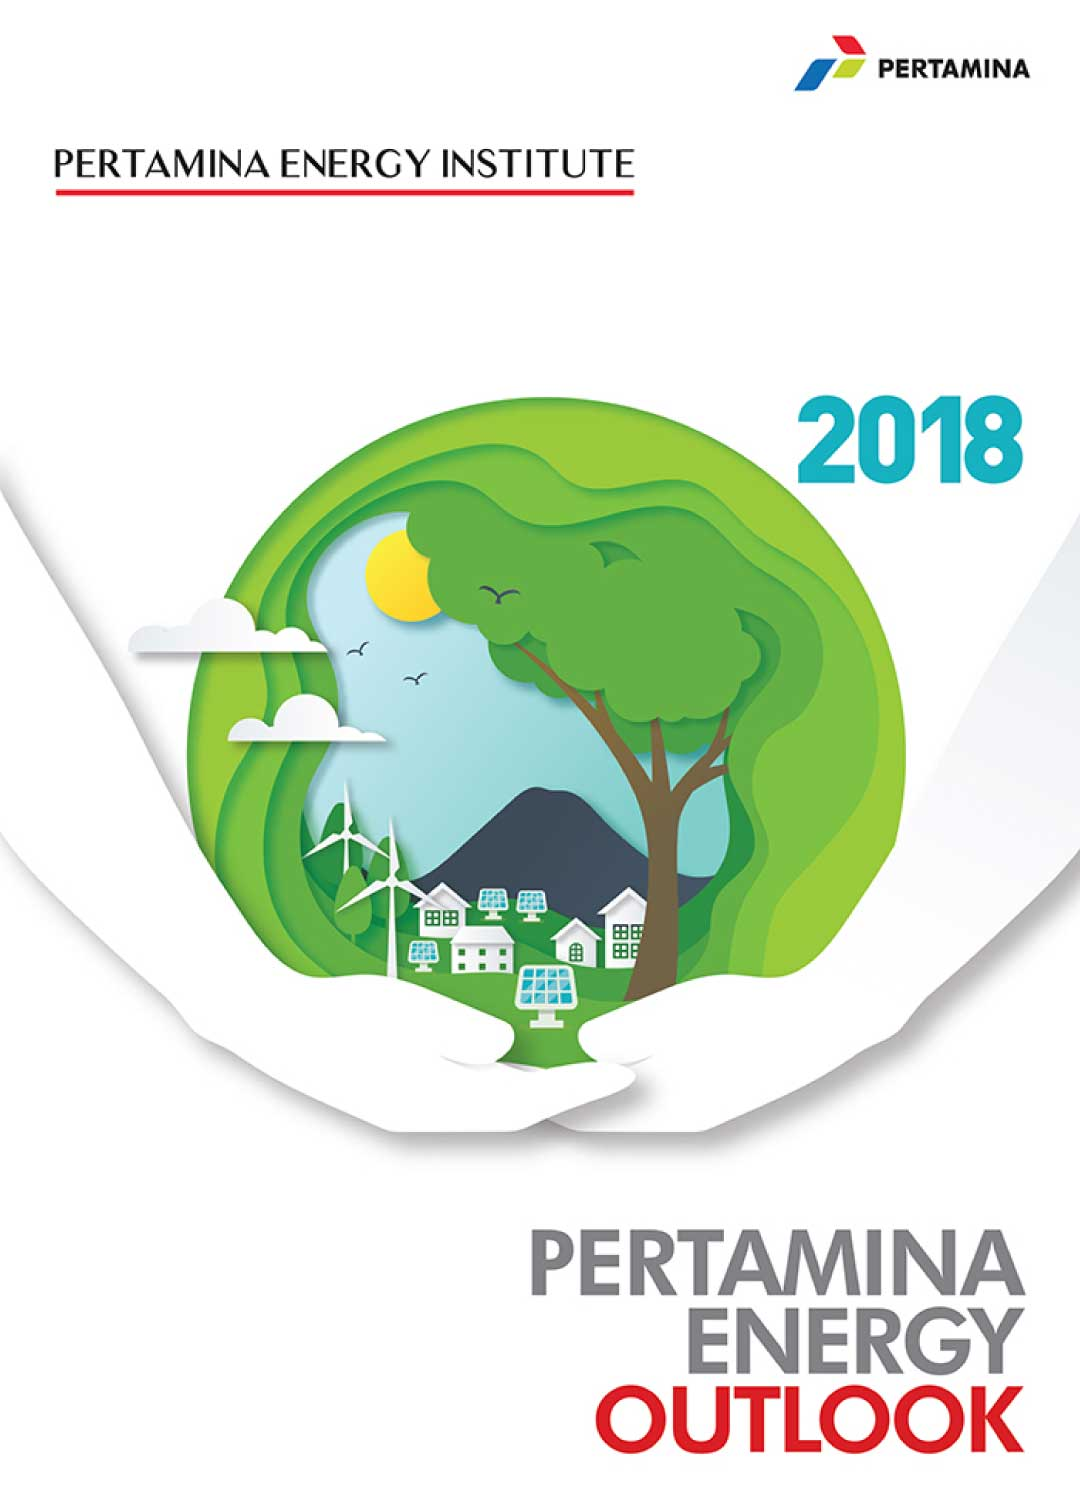 Pertamina Energy Outlook 2018